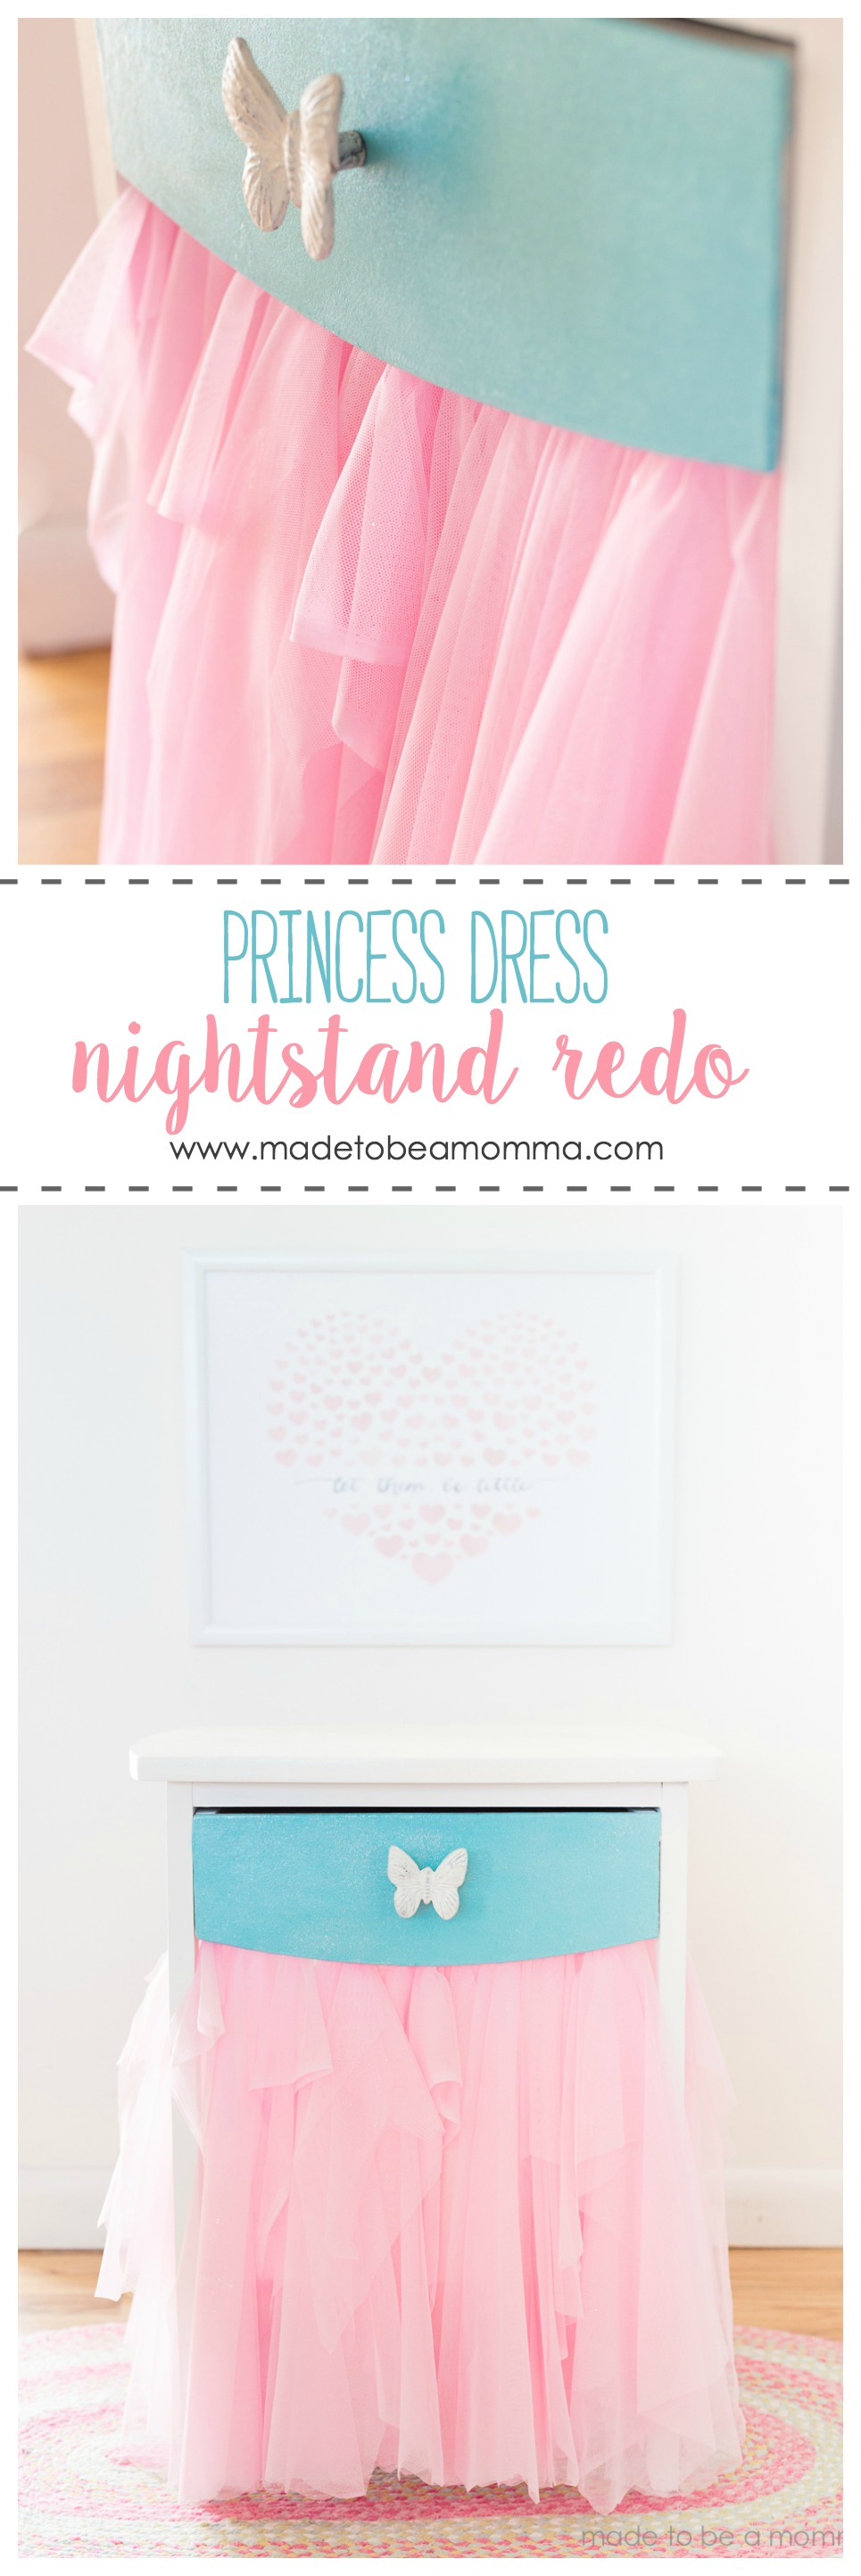 Princess Dress Nightstand Redo